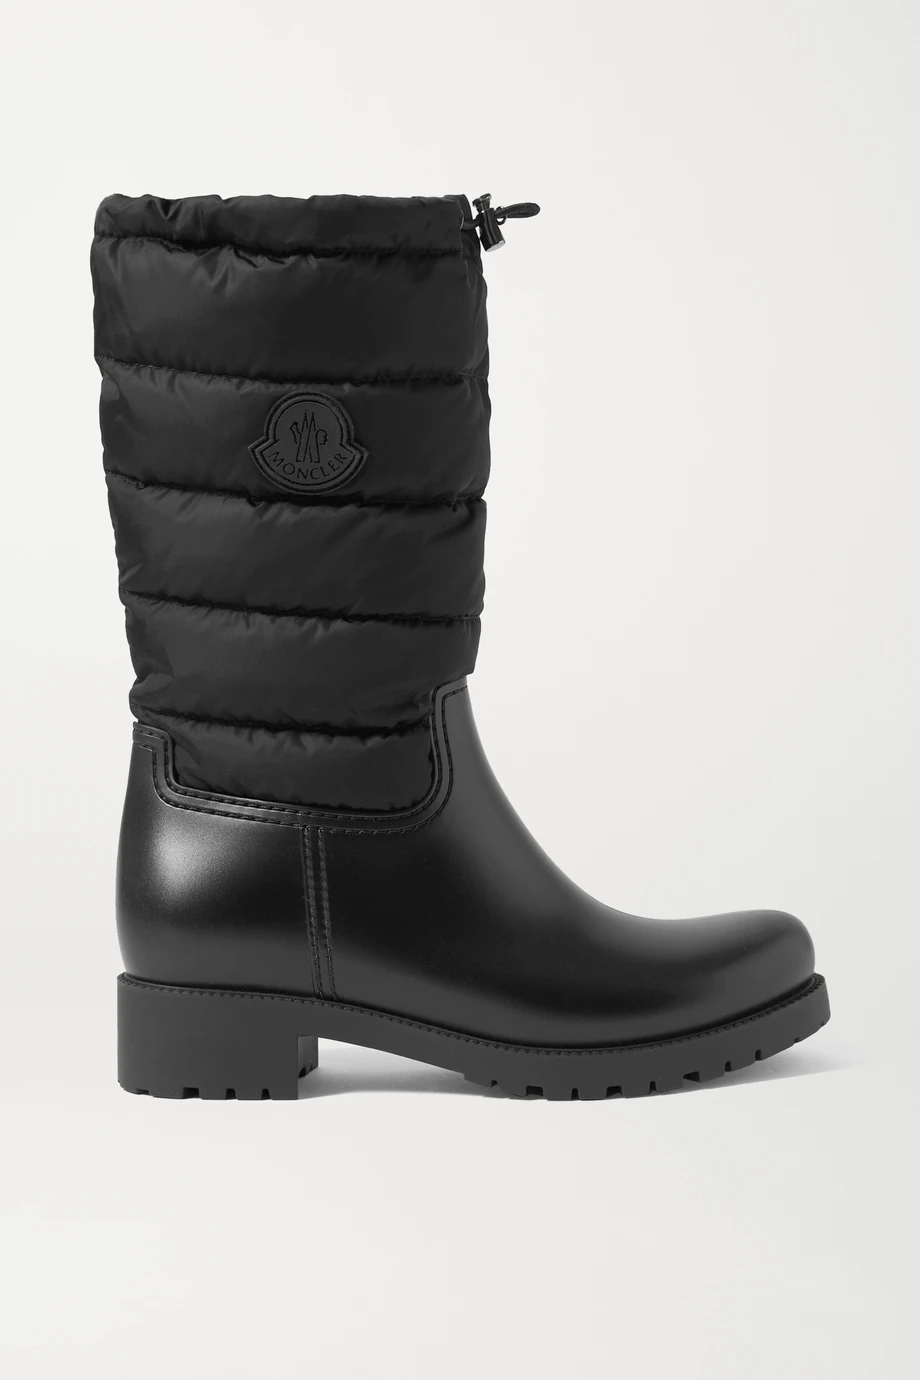 "<br><br><strong>Moncler</strong> Ginette Quilted Nylon And Rubber Rain Boots, $, available at <a href=""https://go.skimresources.com/?id=30283X879131&url=https%3A%2F%2Fwww.net-a-porter.com%2Fen-us%2Fshop%2Fproduct%2Fmoncler%2Fginette-quilted-nylon-and-rubber-rain-boots%2F1257857"" rel=""nofollow noopener"" target=""_blank"" data-ylk=""slk:Net-A-Porter"" class=""link rapid-noclick-resp"">Net-A-Porter</a>"